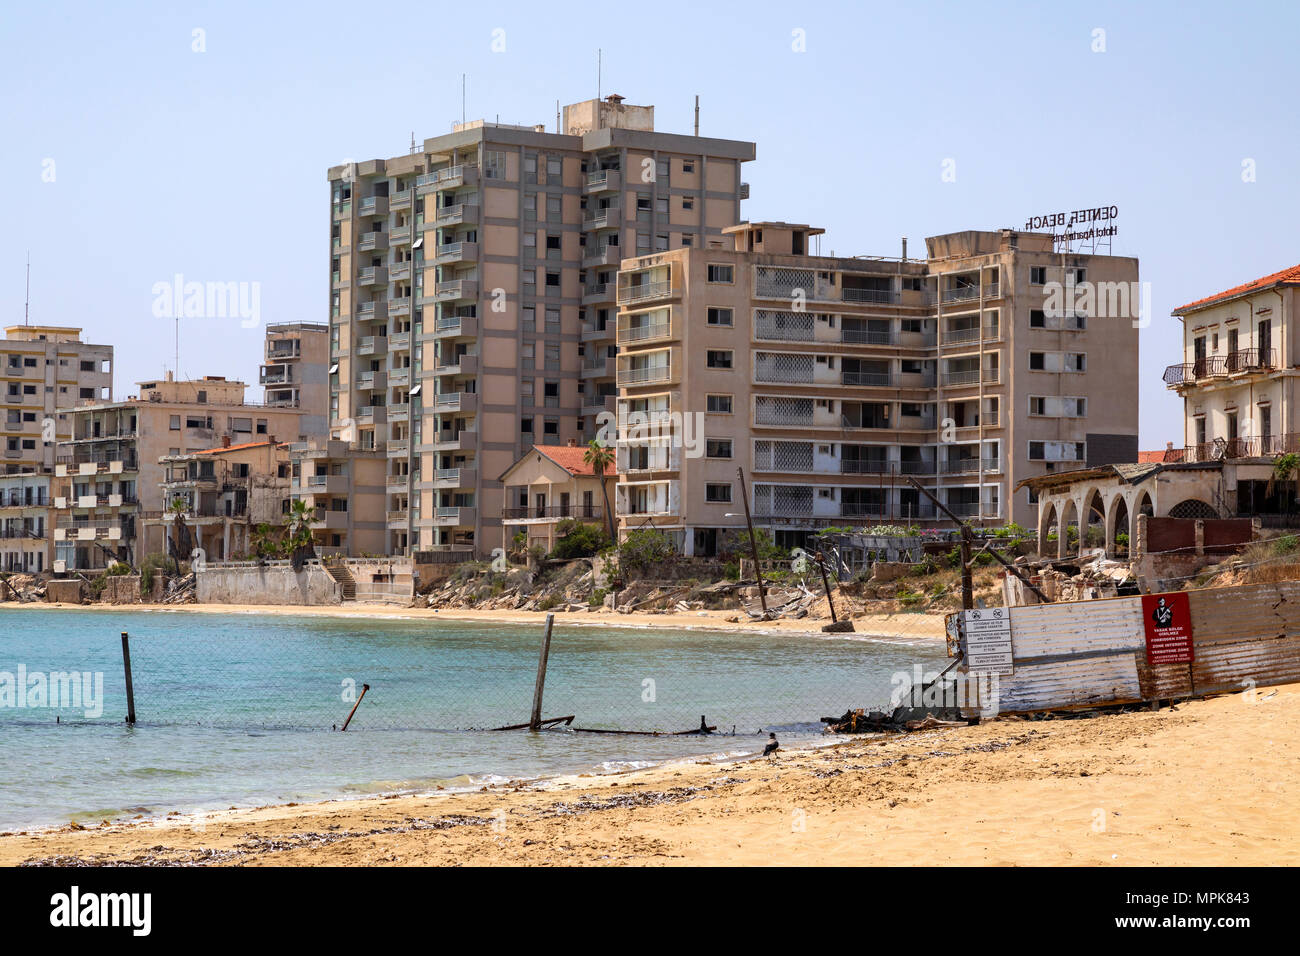 The abandoned southern quarter of the Cypriot city of Famagusta. Prior to the Turkish invasion of Cyprus in 1974, it was the modern tourist area of th - Stock Image